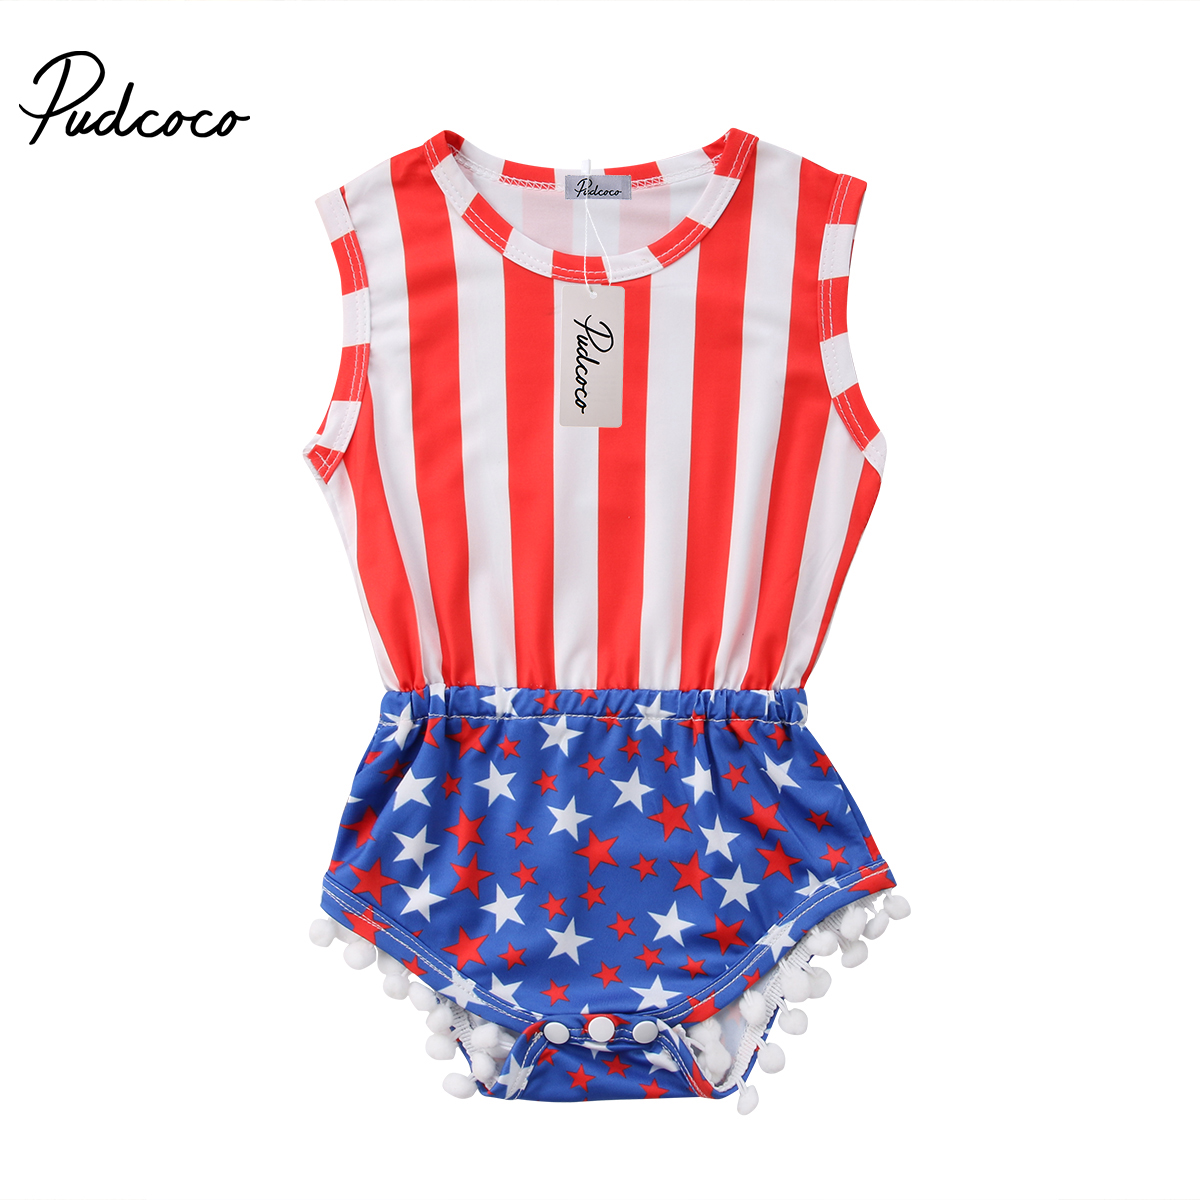 Newborn Baby Boy Girl Stripes Stars Tassel 4th of July Romper Playsuit Sunsuit Independence Day Clothes gentlemen style striped baby boy romper playsuit